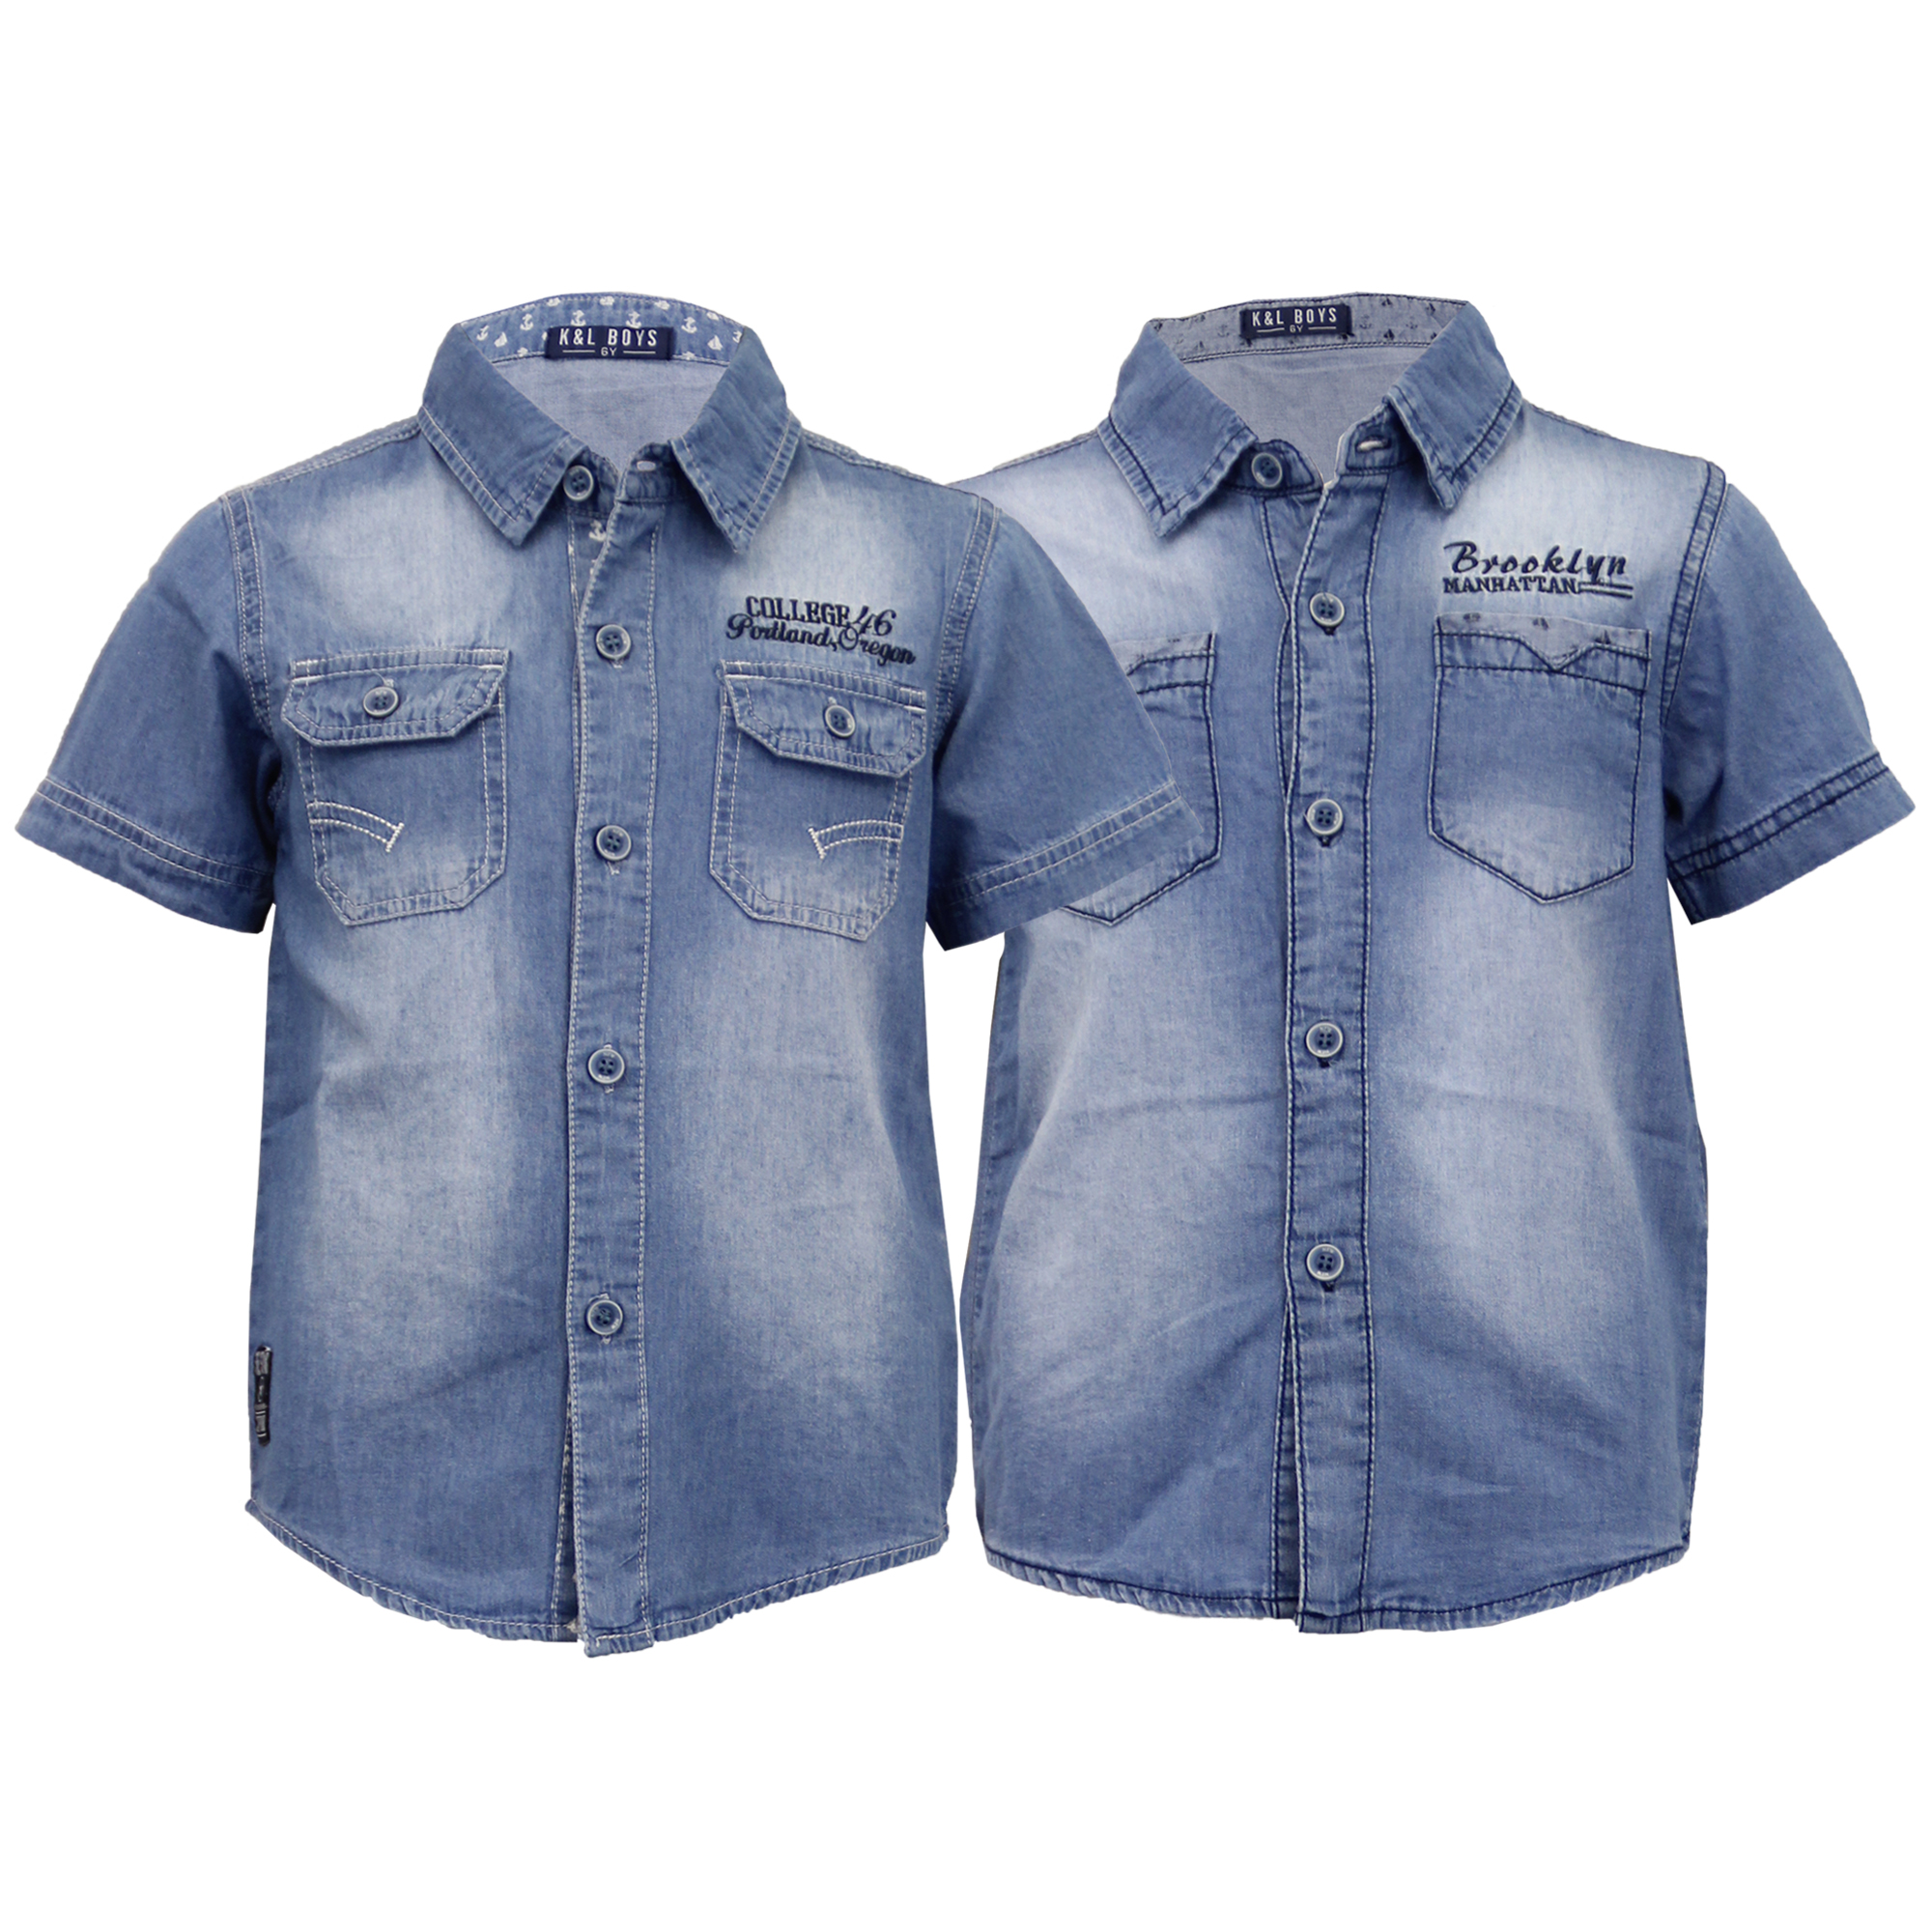 ae6d0a561a Boys Denim Shirt Kids Short Sleeved Faded Collared Cotton Casual ...